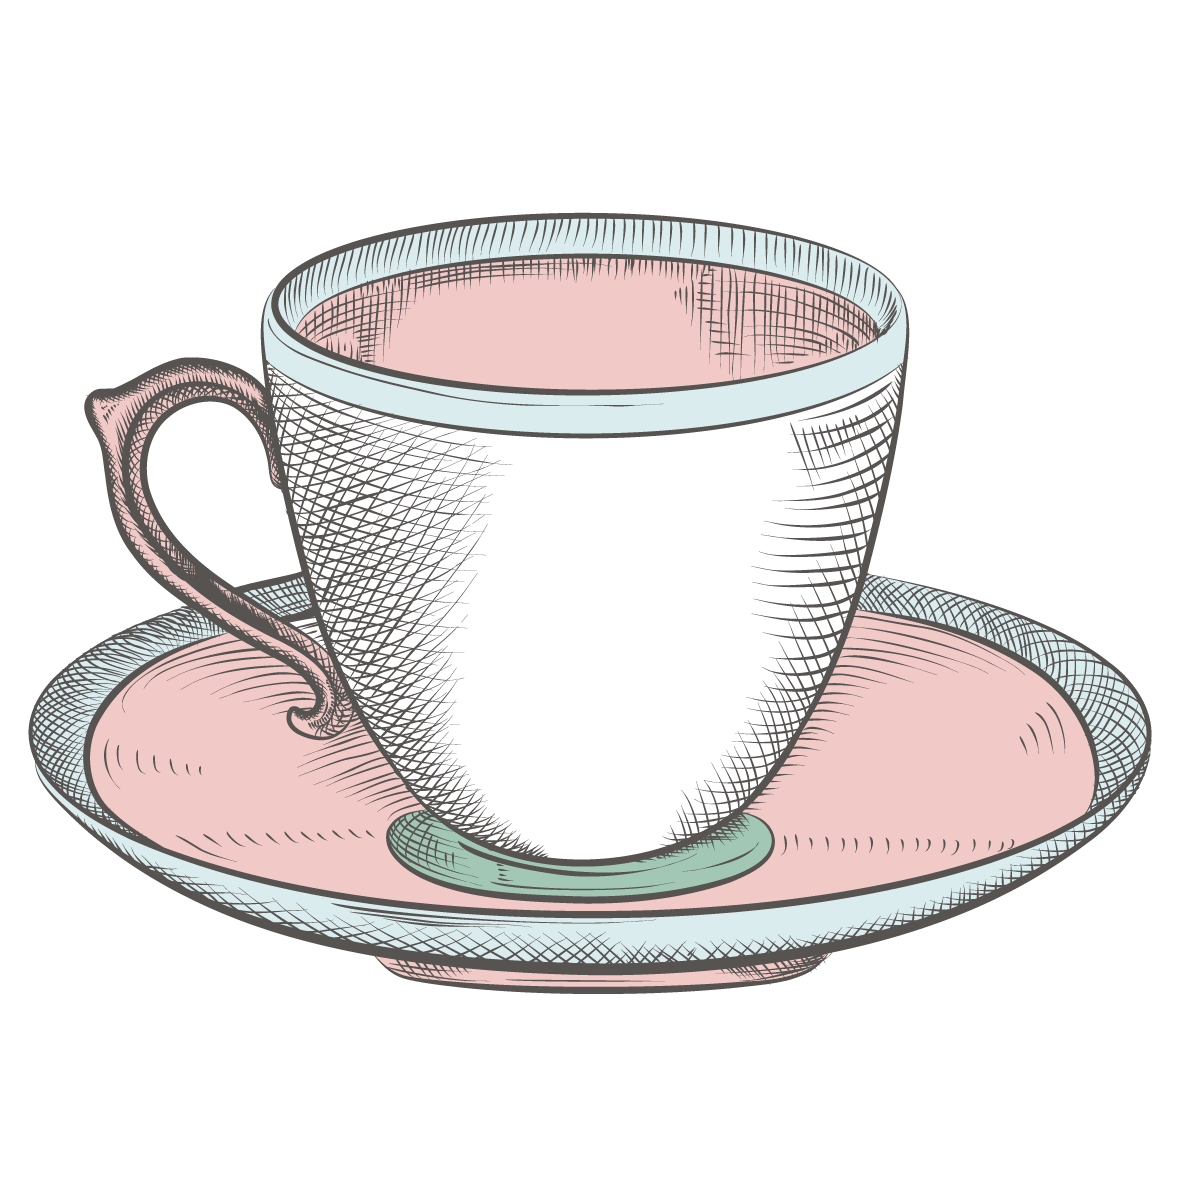 Tea Cup Vector Png, png collections at sccpre.cat.